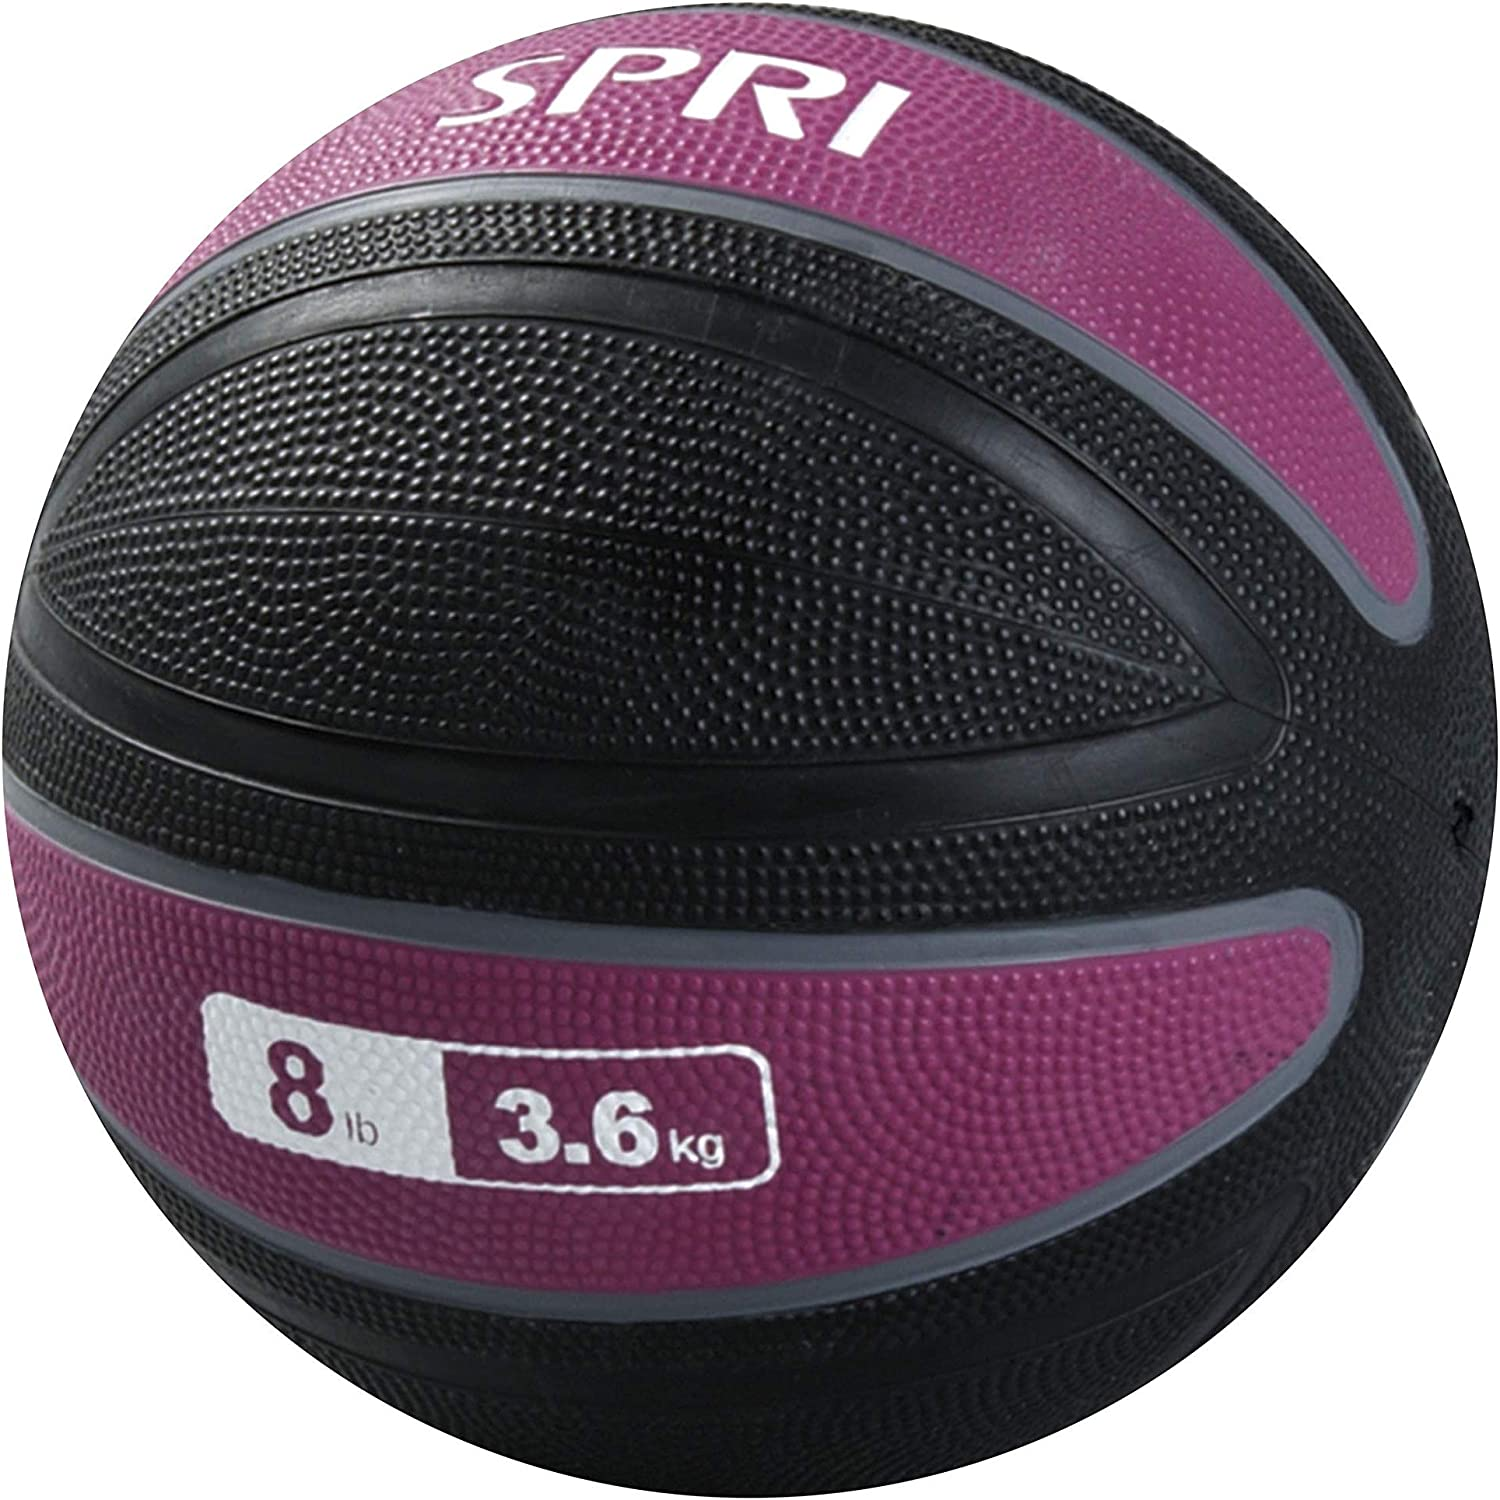 SPRI Xerball Medicine Ball Thick Walled Durable Construction with Textured Surface, Purple, 10-Pound : Weight Bars : Sports & Outdoors